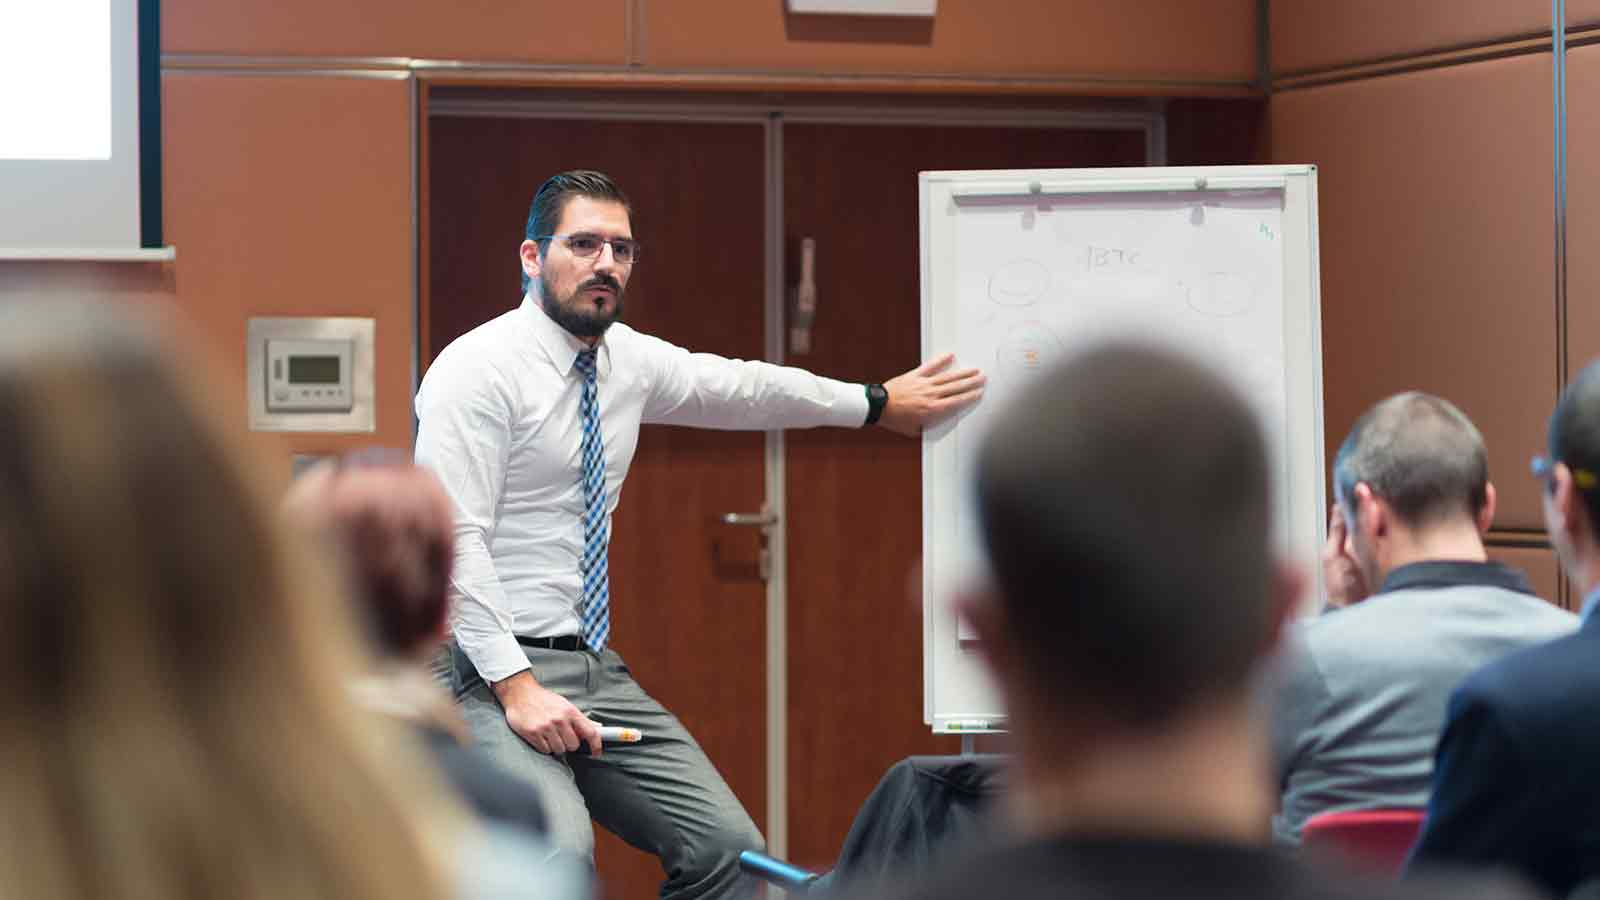 man pointing at white board in front of small group